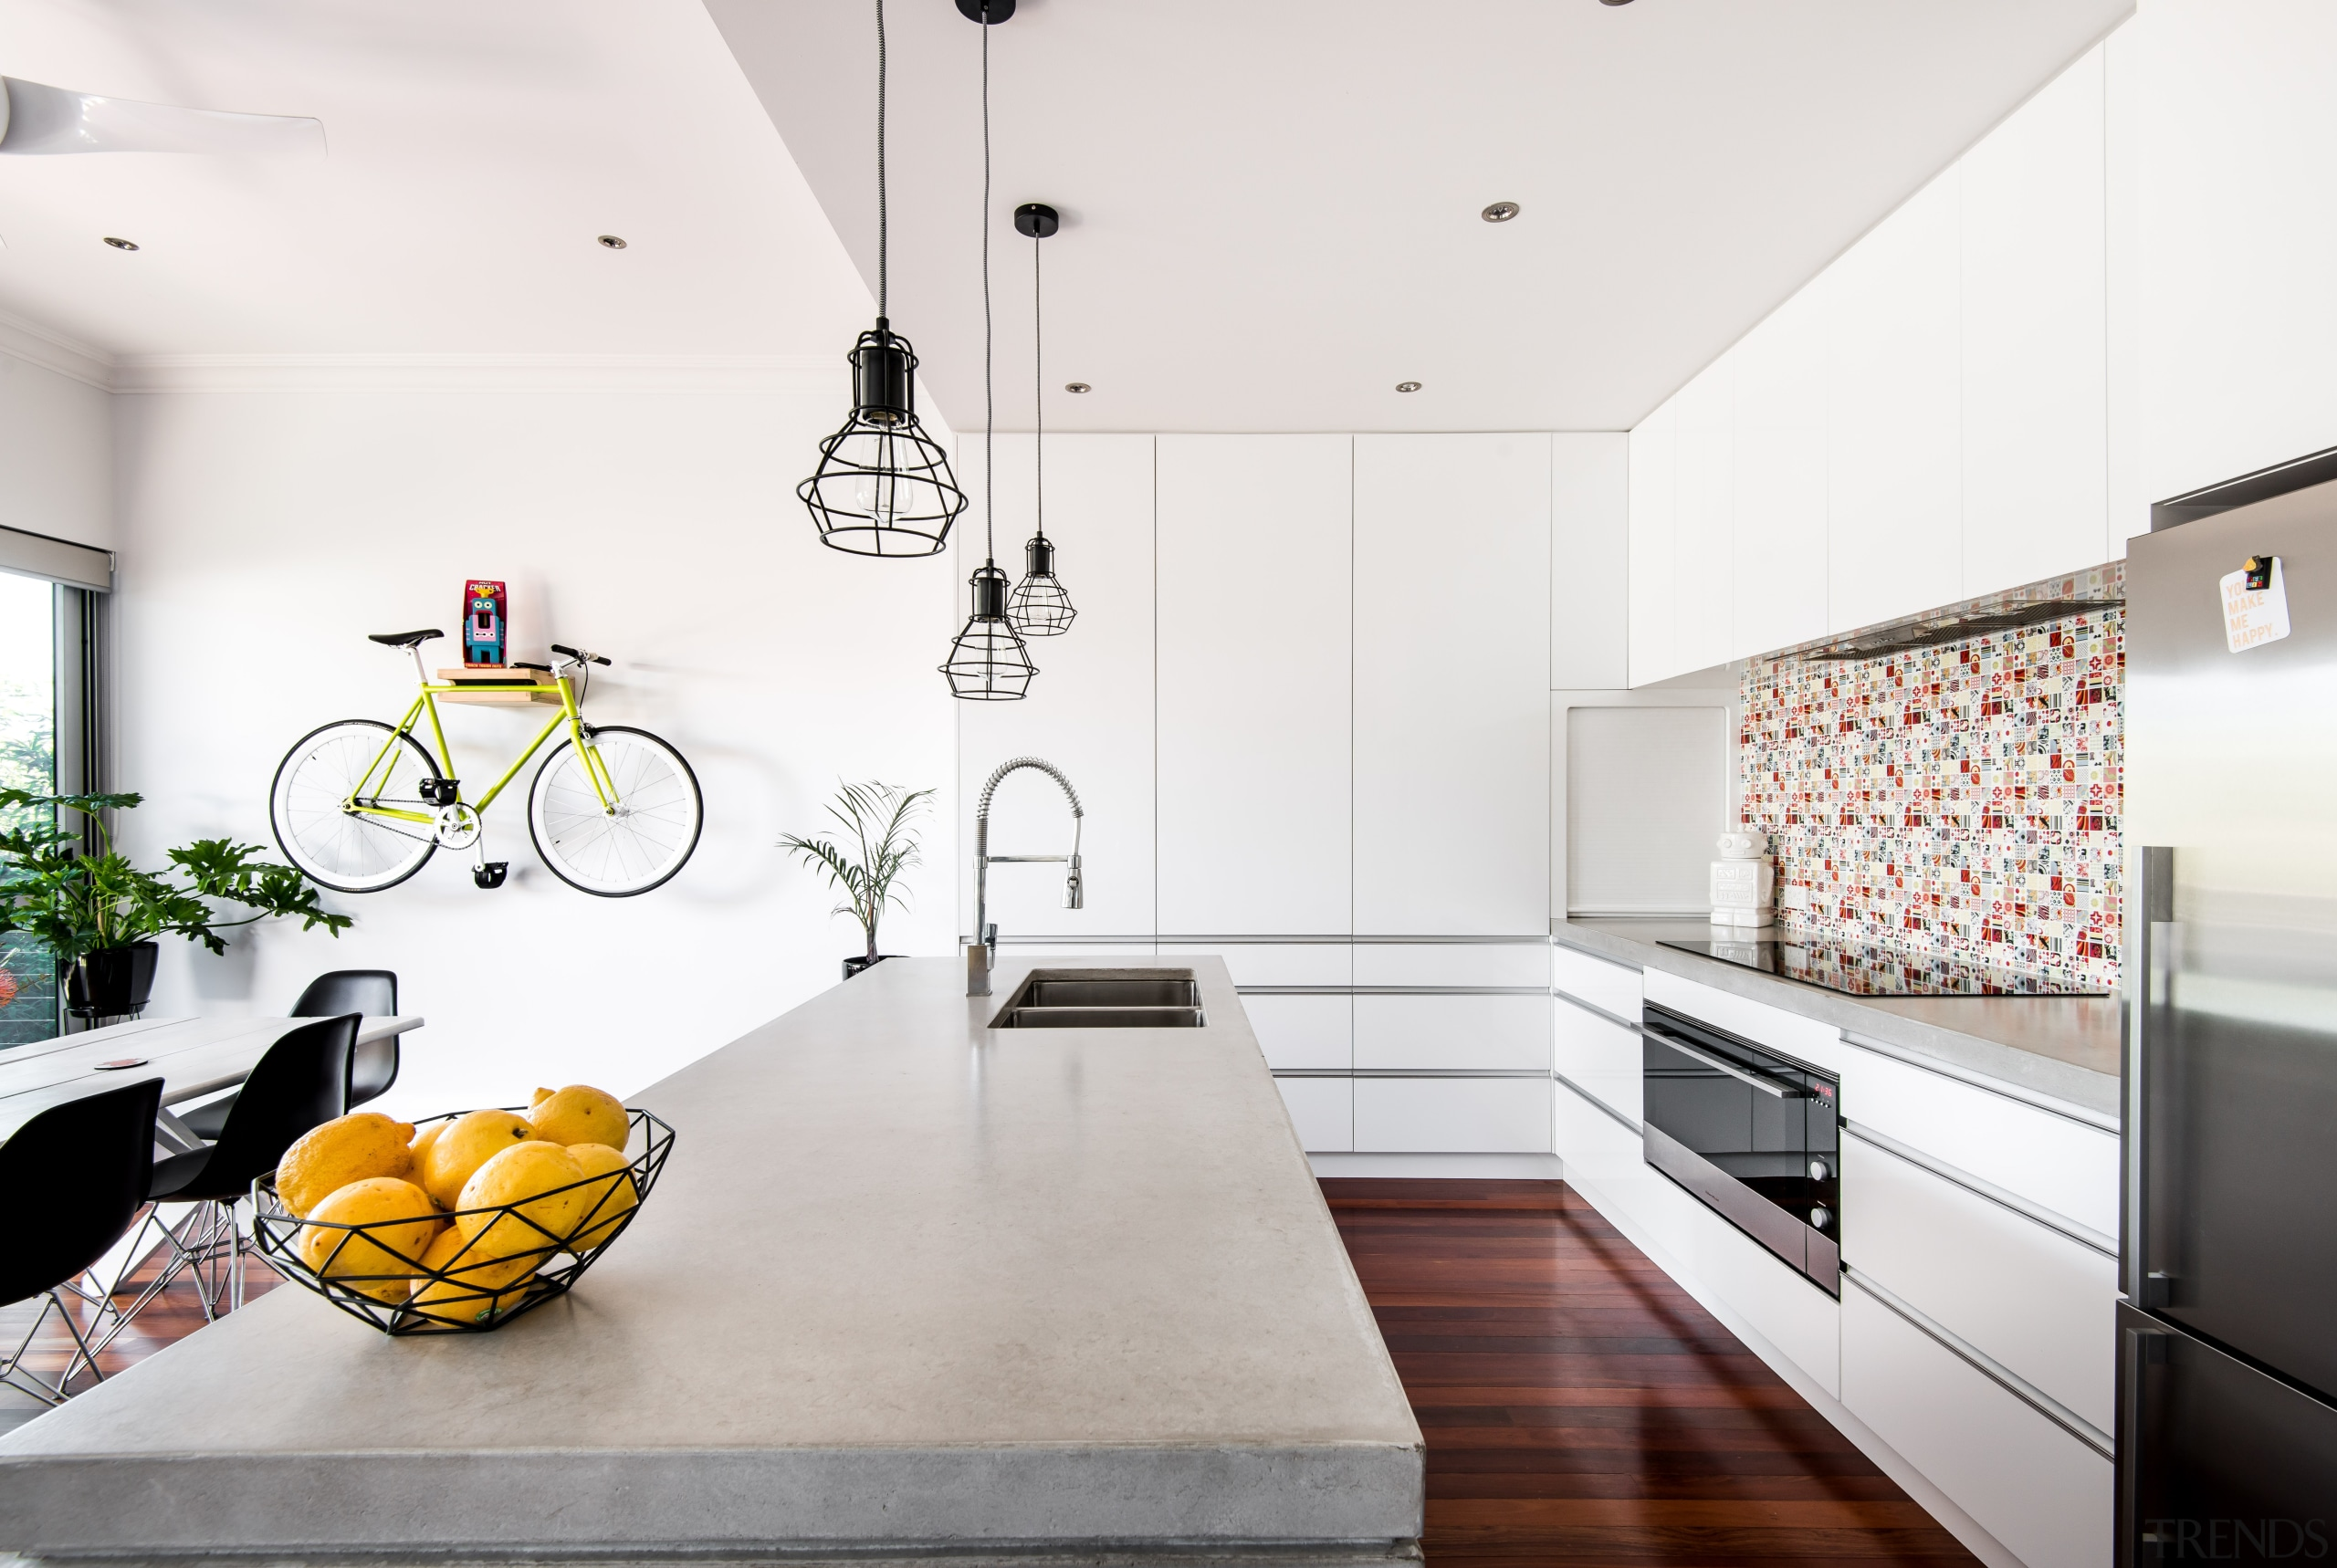 By combining carefully placed additions with a clever architecture, building, cabinetry, ceiling, countertop, design, floor, flooring, furniture, home, house, interior design, kitchen, light fixture, loft, material property, property, room, table, tile, wall, white, wood flooring, yellow, white